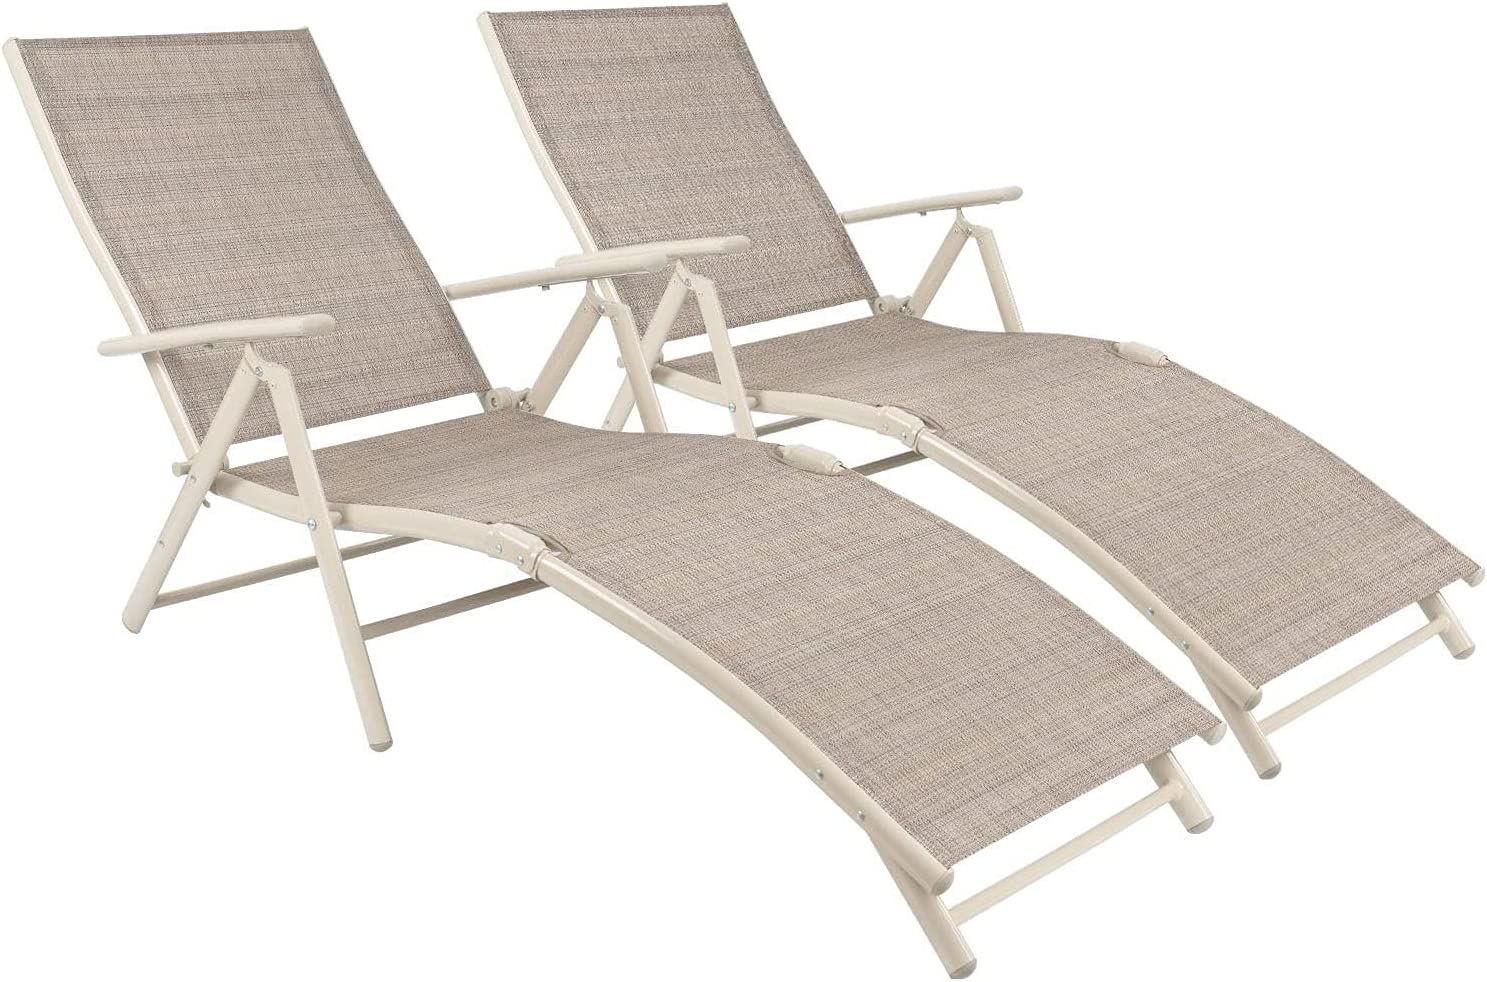 Popularity Flamaker Patio Lounge Discount mail order Chairs Fol Adjustable Chaise